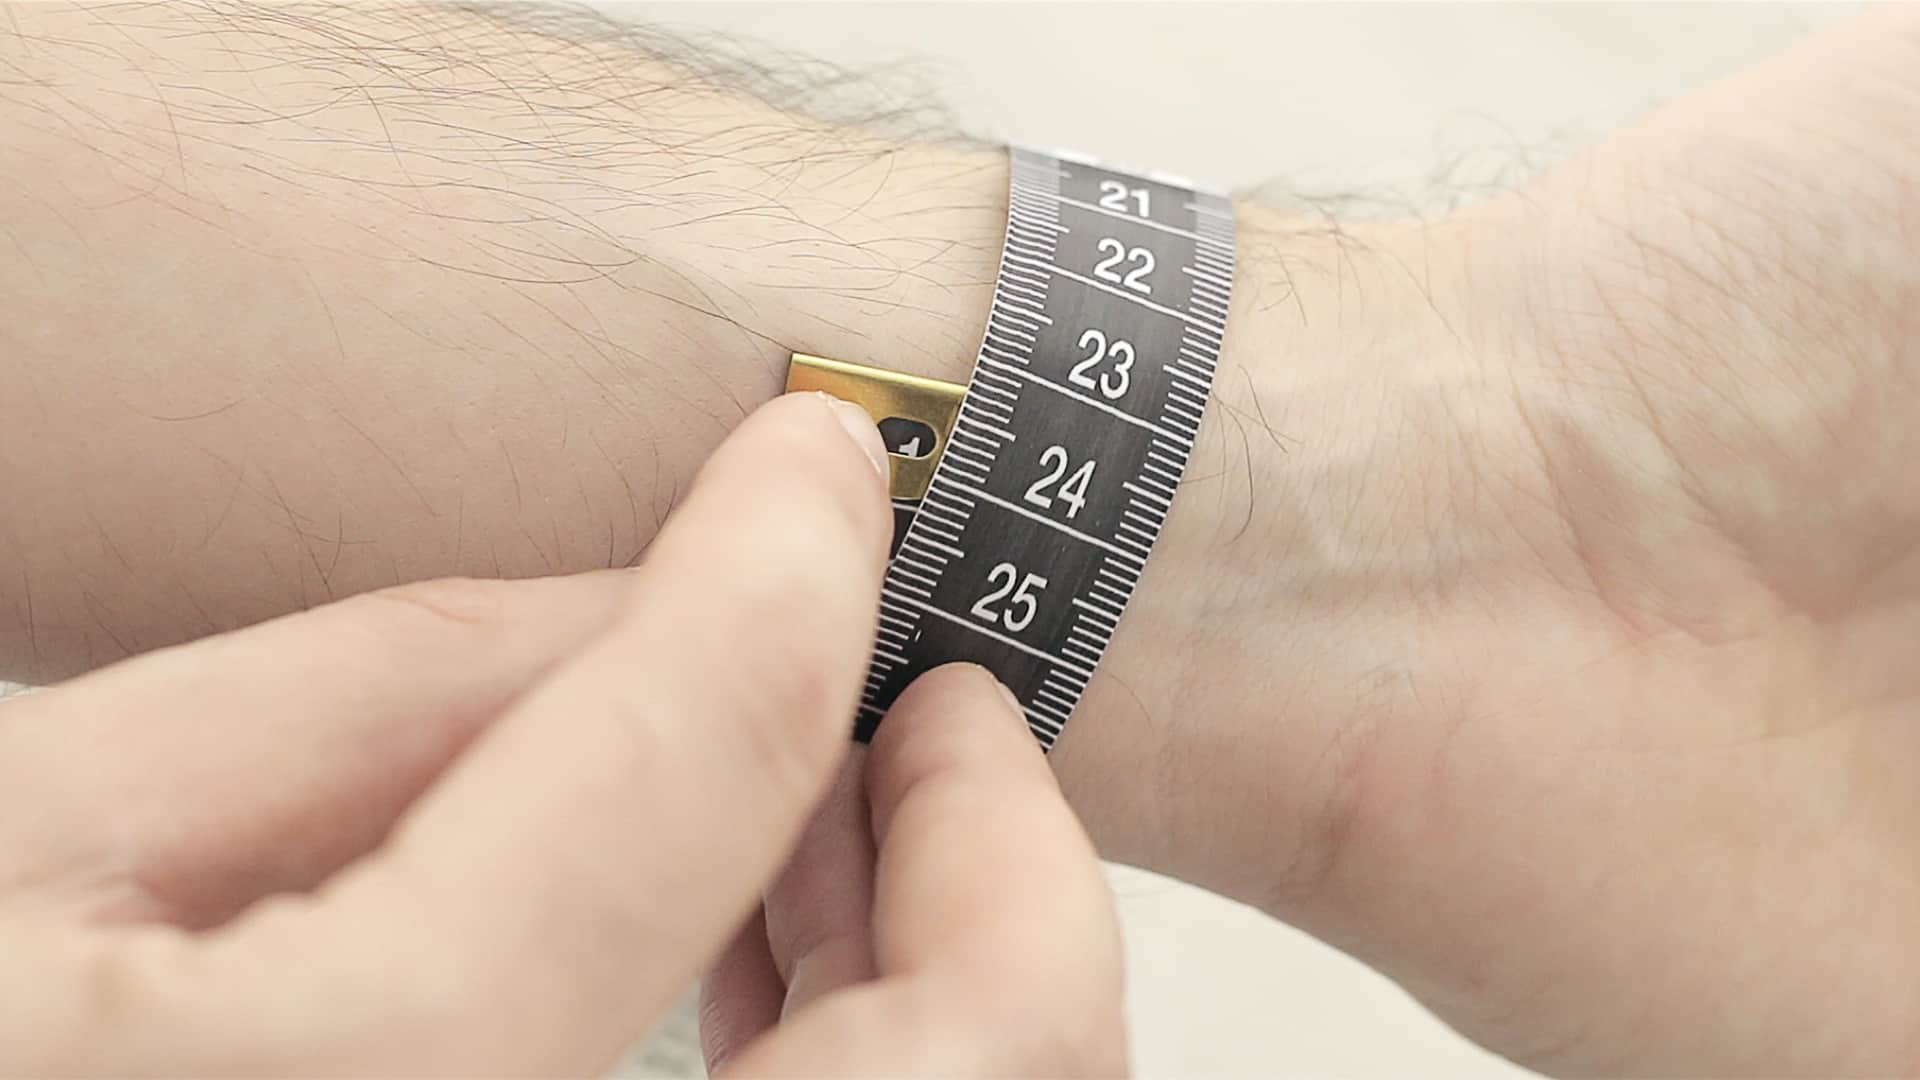 How to measure your wrist Item is not for sale!